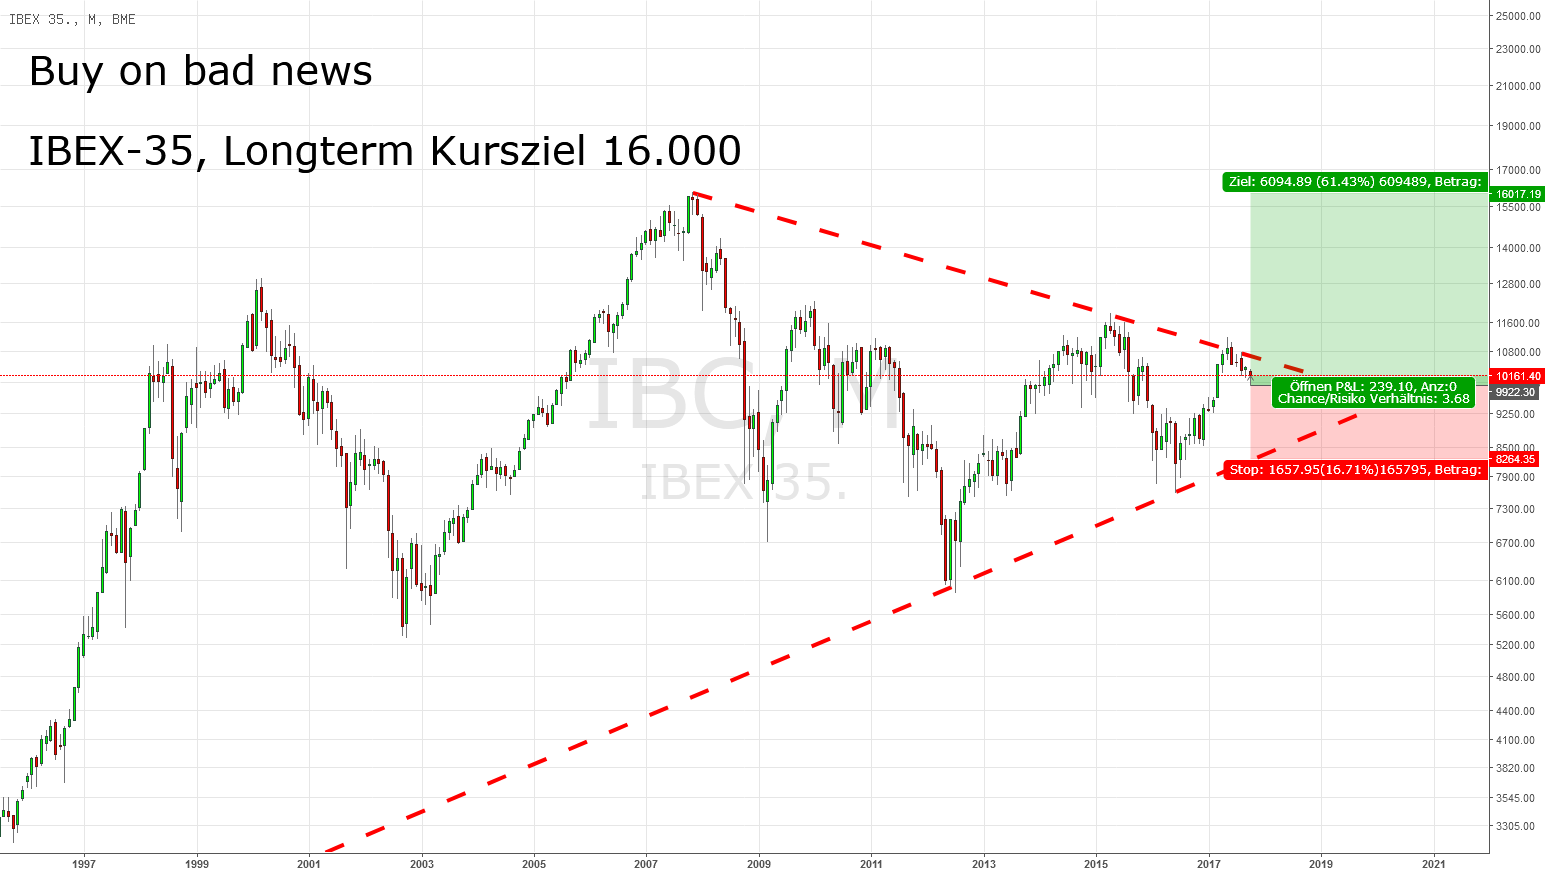 IBEX-35, Long Term View: Buy On Bad News